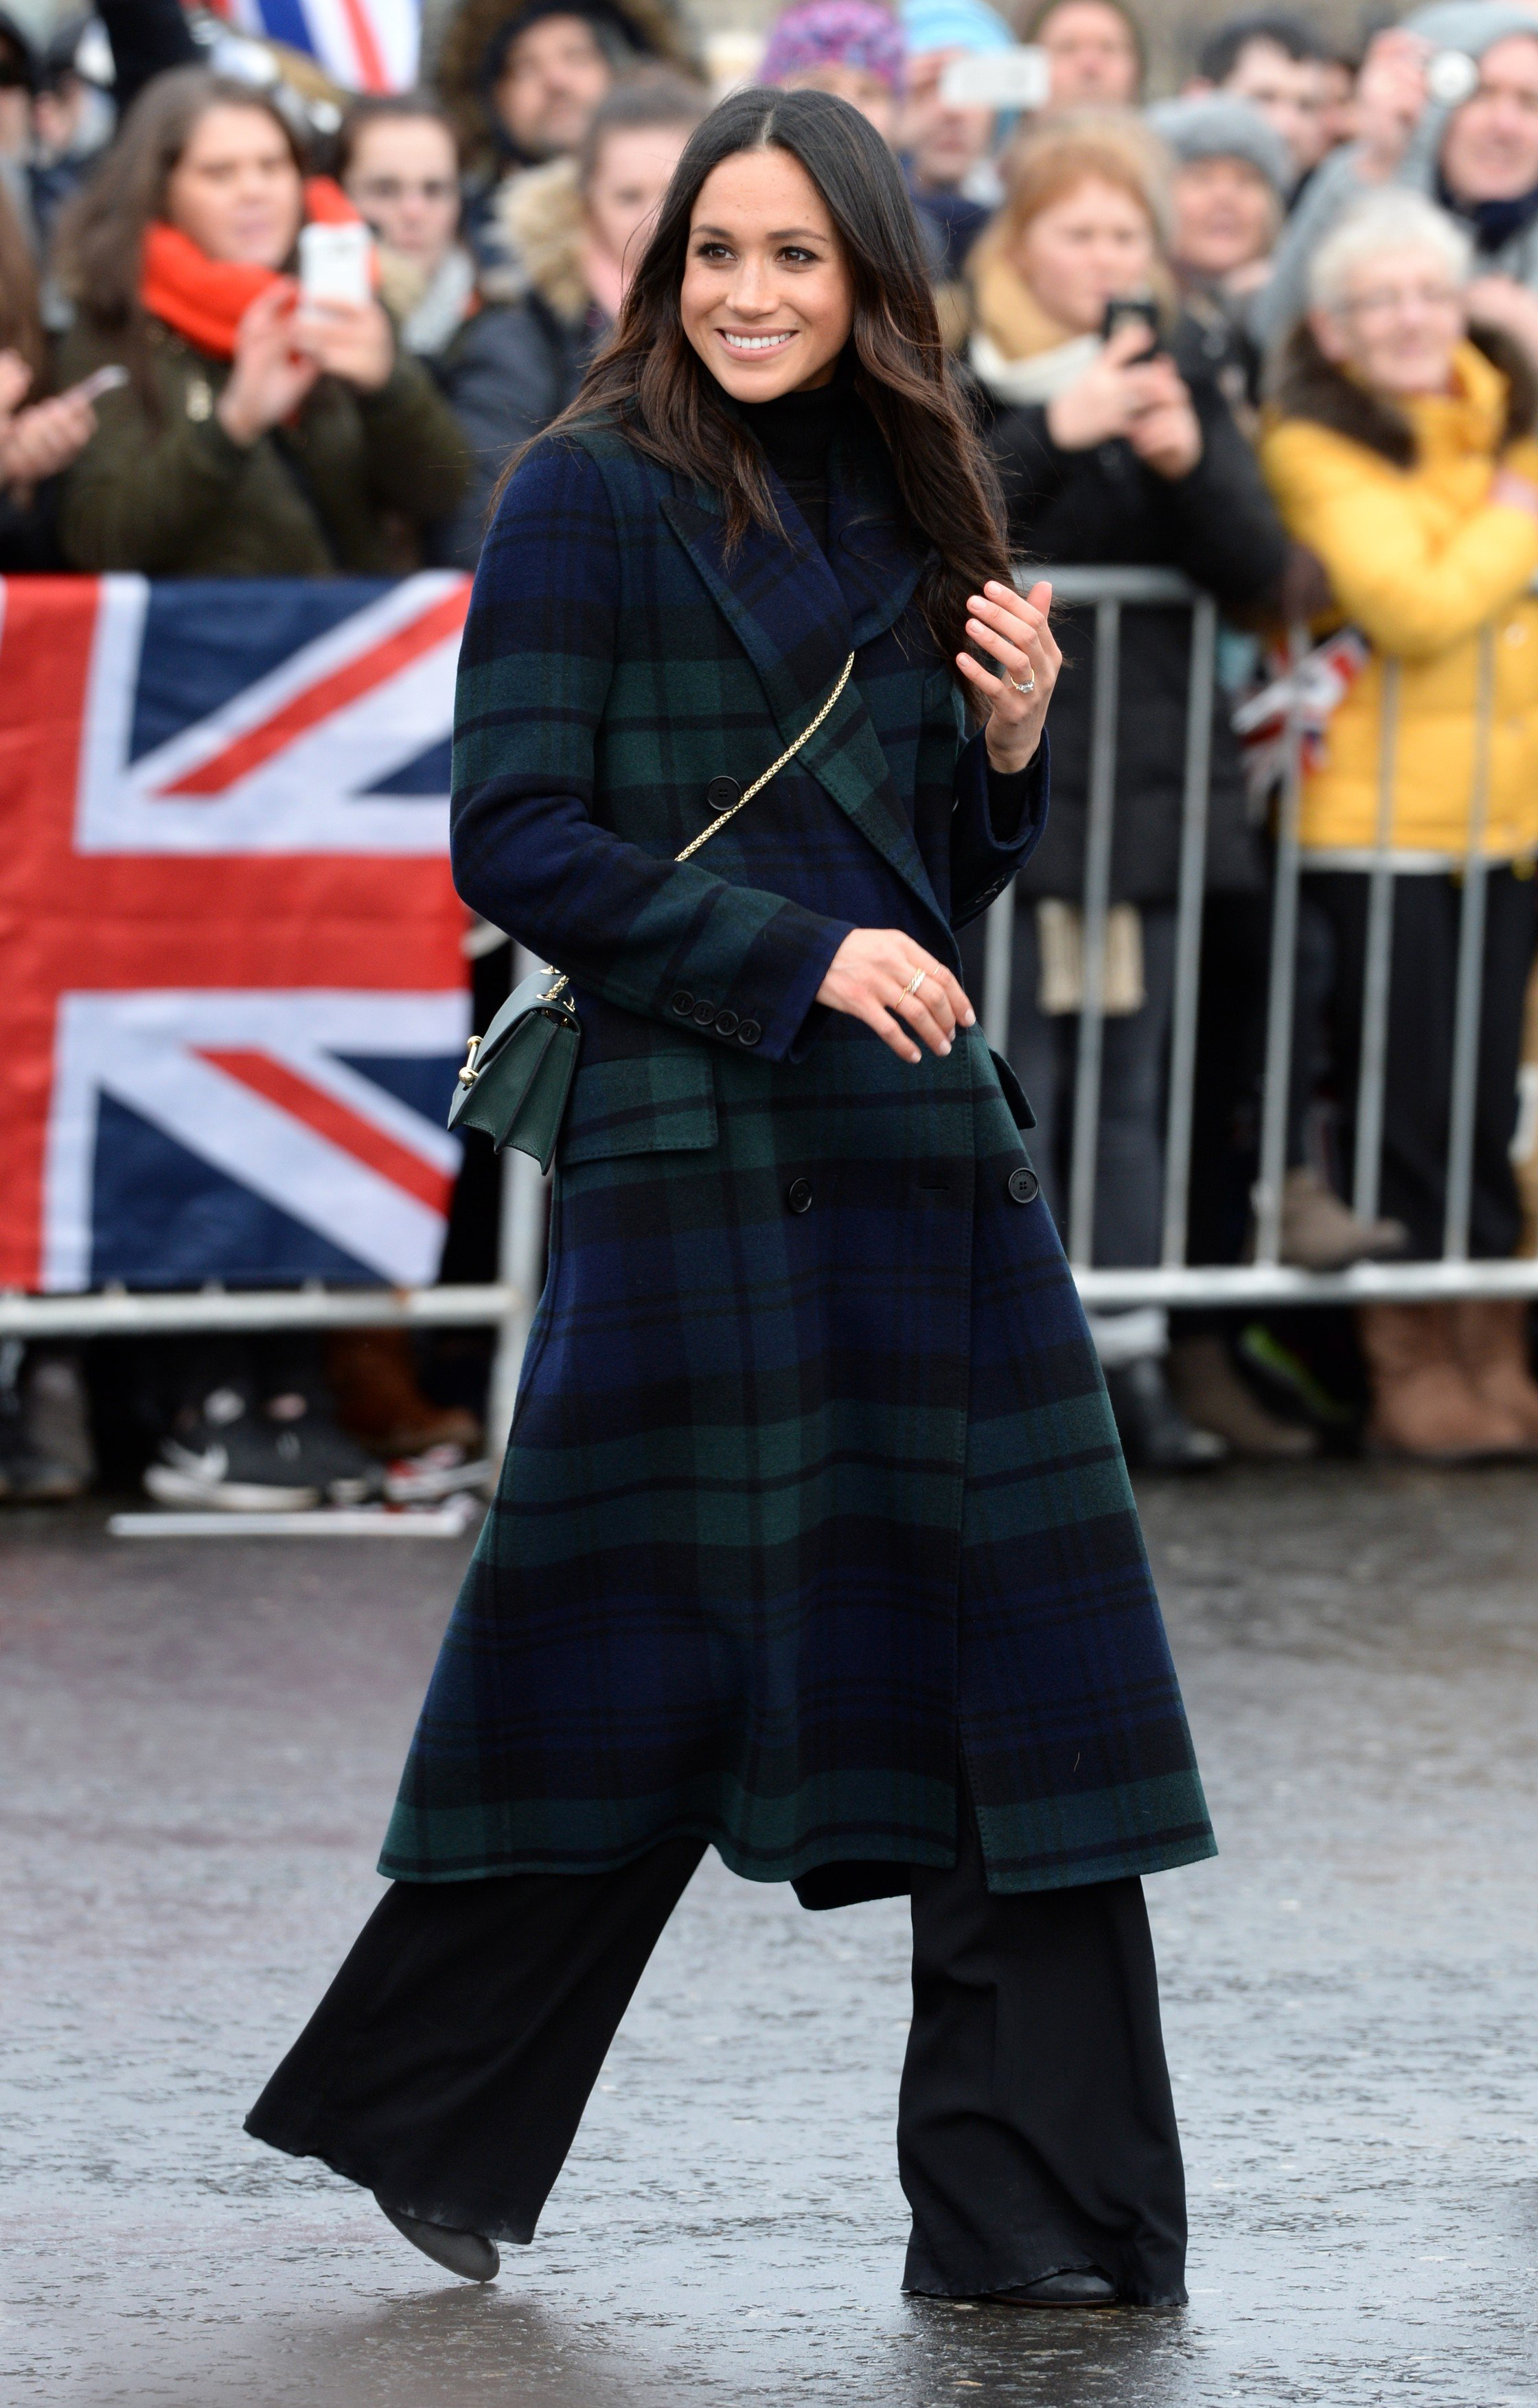 Meghan Markle during a walkabout on the esplanade at Edinburgh Castle, during their visit to Scotland., Image: 363159377, License: Rights-managed, Restrictions: , Model Release: no, Credit line: Profimedia, Press Association